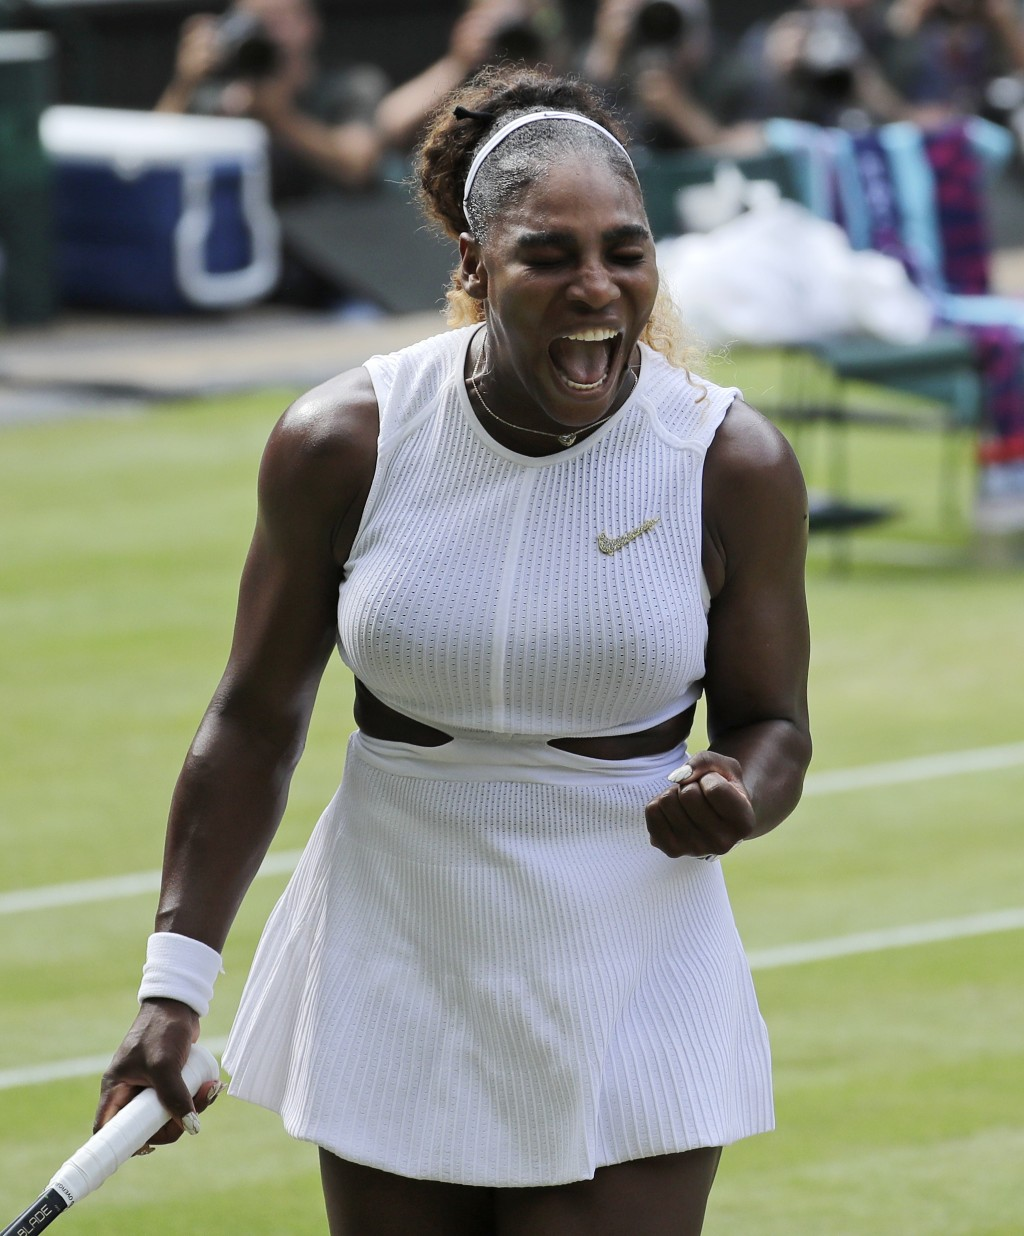 United States' Serena Williams reacts as she plays Czech Republic's Barbora Strycova in a Women's semifinal singles match on day ten of the Wimbledon